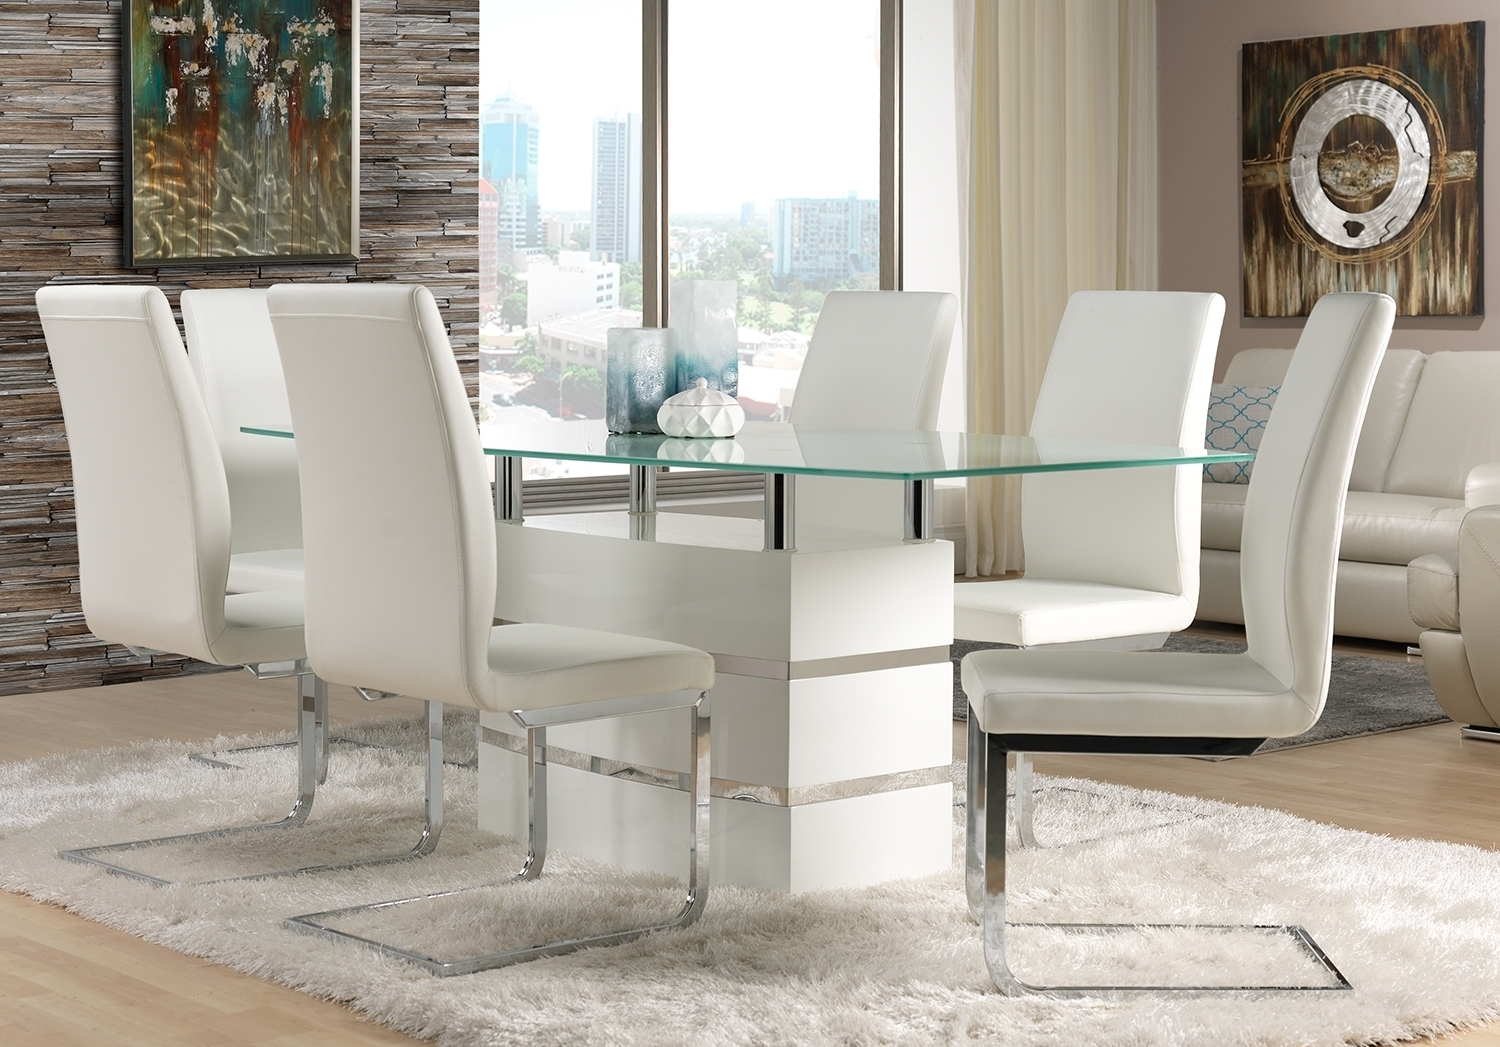 Leon Dining Tables With Favorite Chair Fabulous Glass Dining Table And White Leather Dining Chair (View 5 of 25)